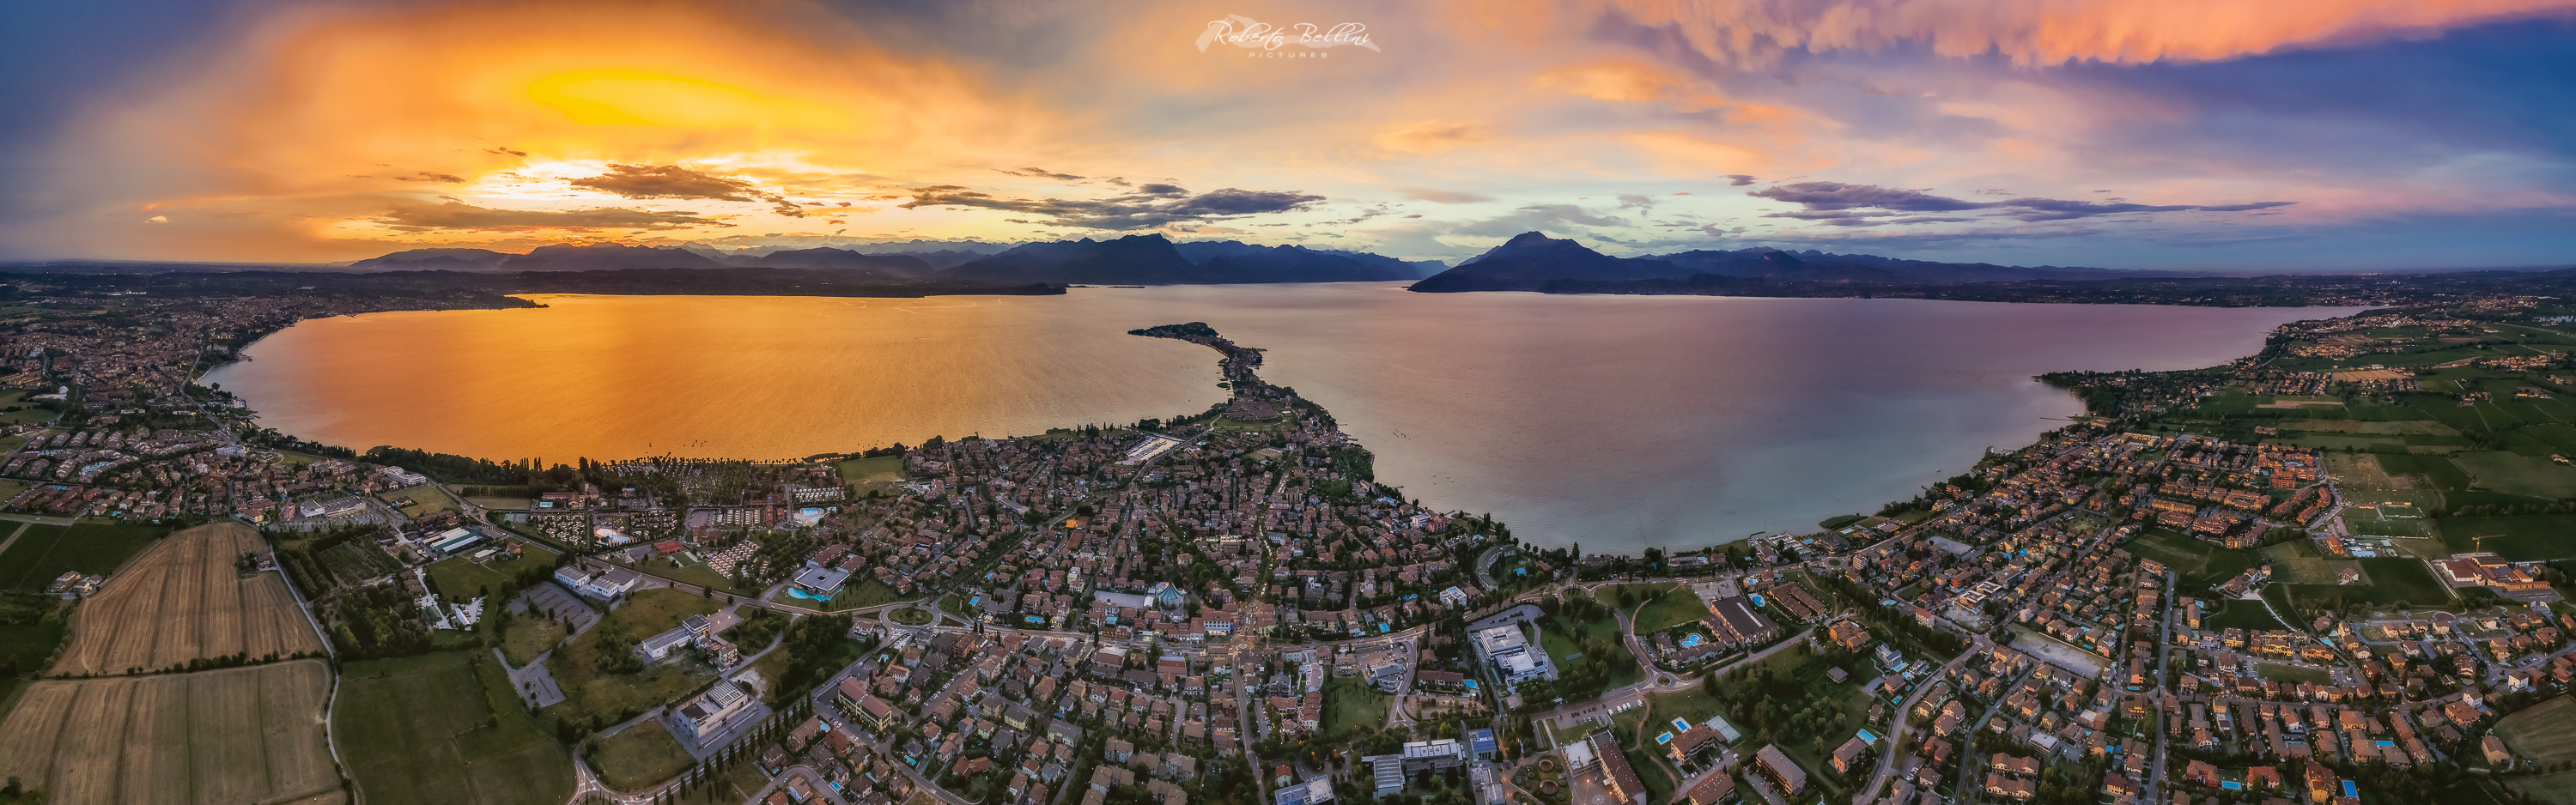 P4P_DJI_0840-Pano-Modifica